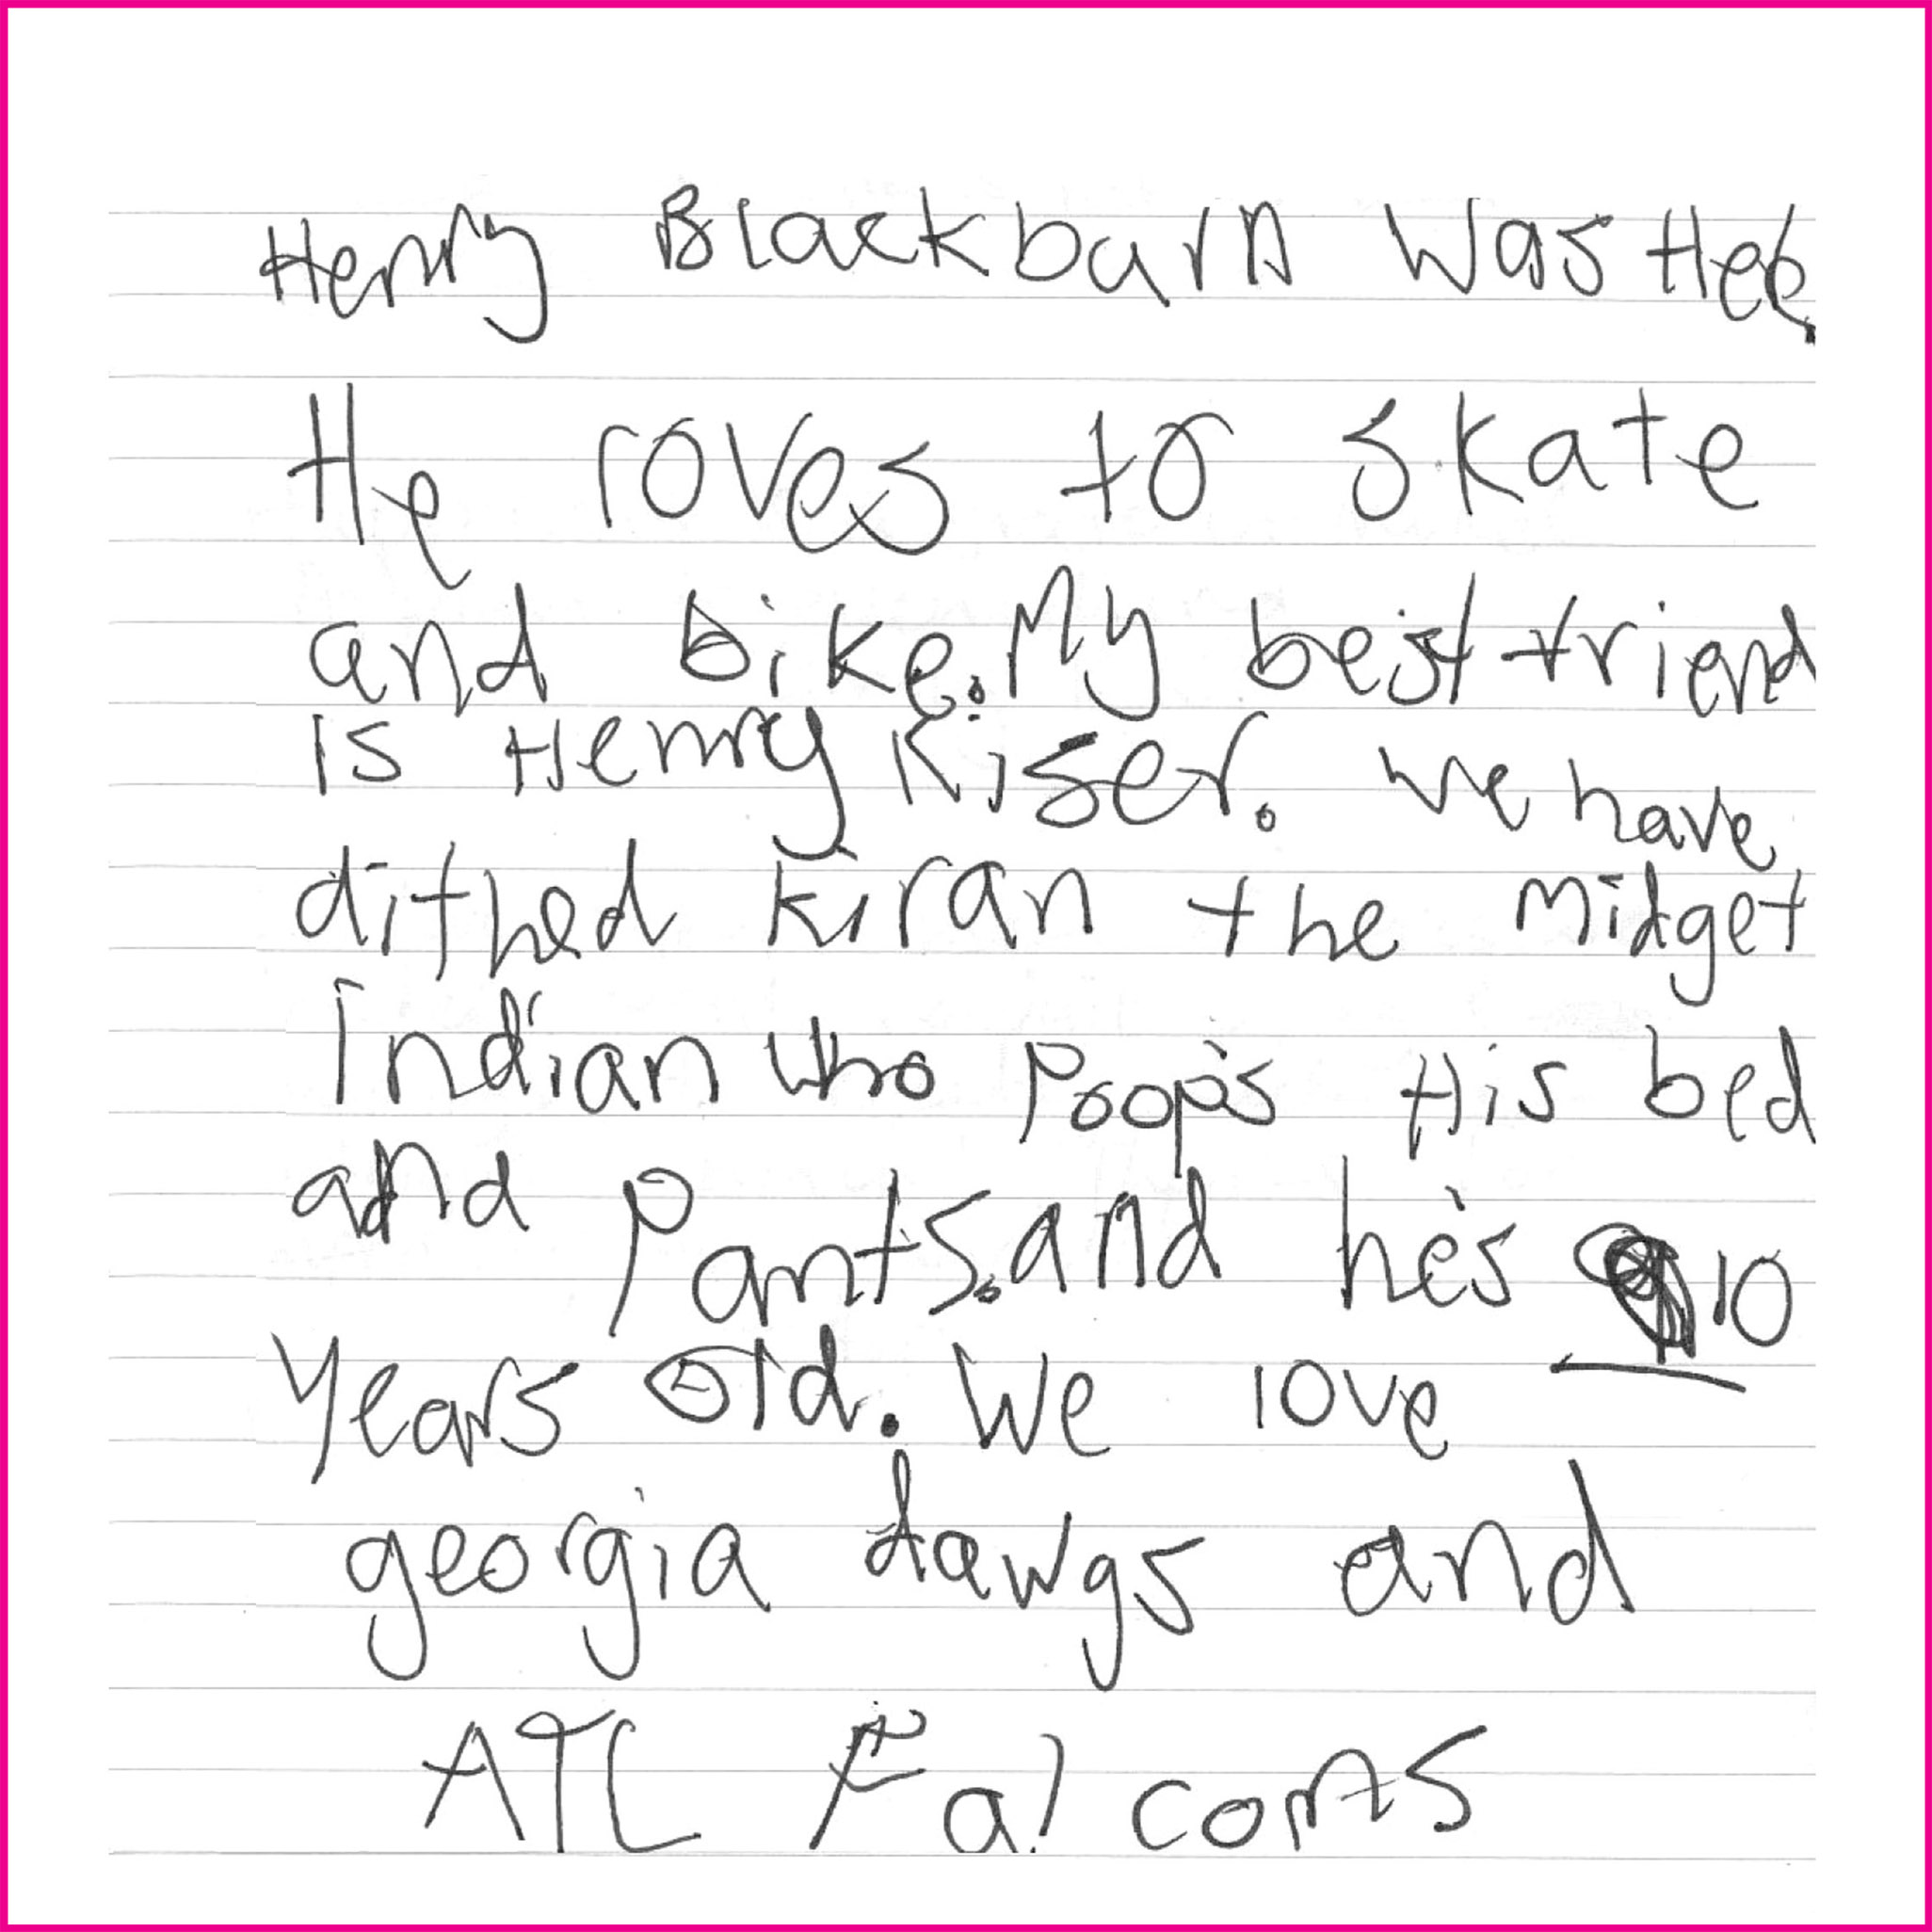 Henry Blackburn was here. He roves to skate and bike. My best friend is Henry Kiser. We have dithed Kiran the midget indian who poops his bed and pants and he's 10 years old. We love georgia dawgs and ATL falcons.